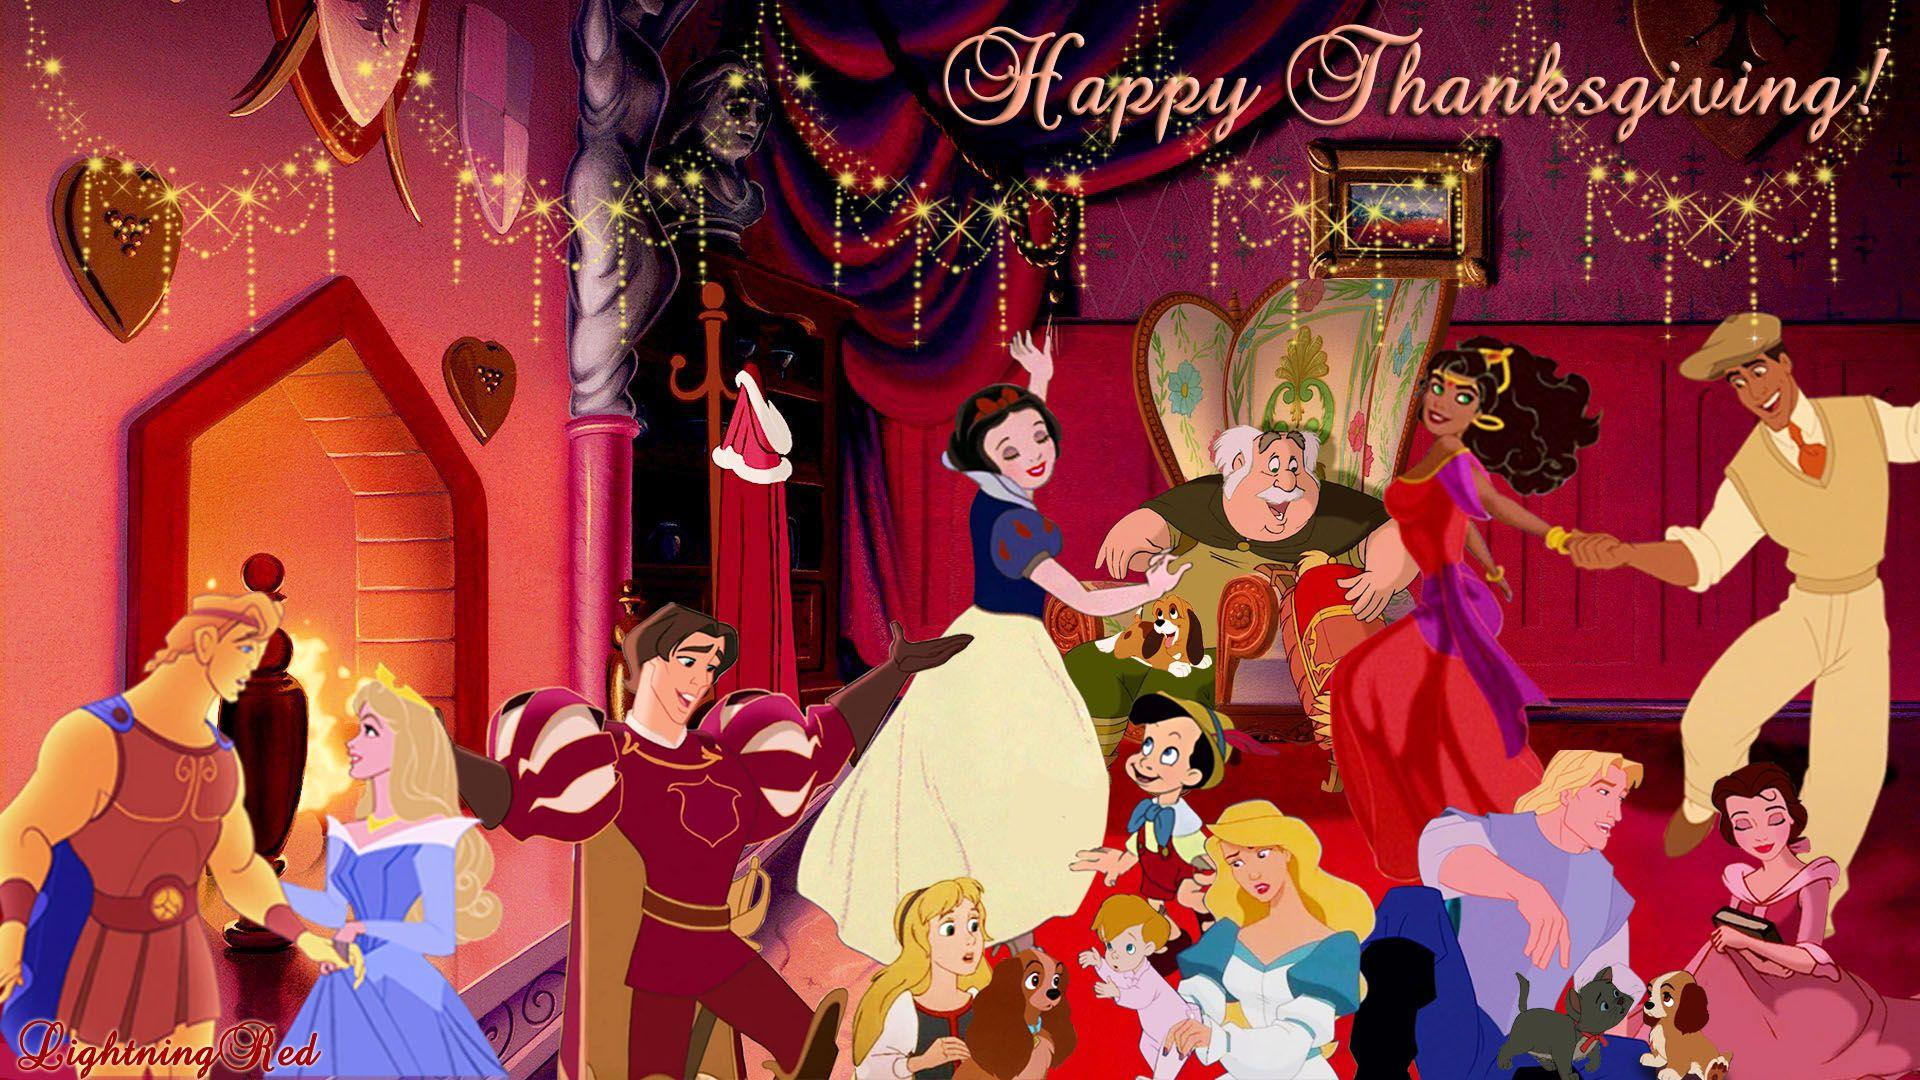 Free Disney Thanksgiving Wallpapers High Quality Resolution « Long